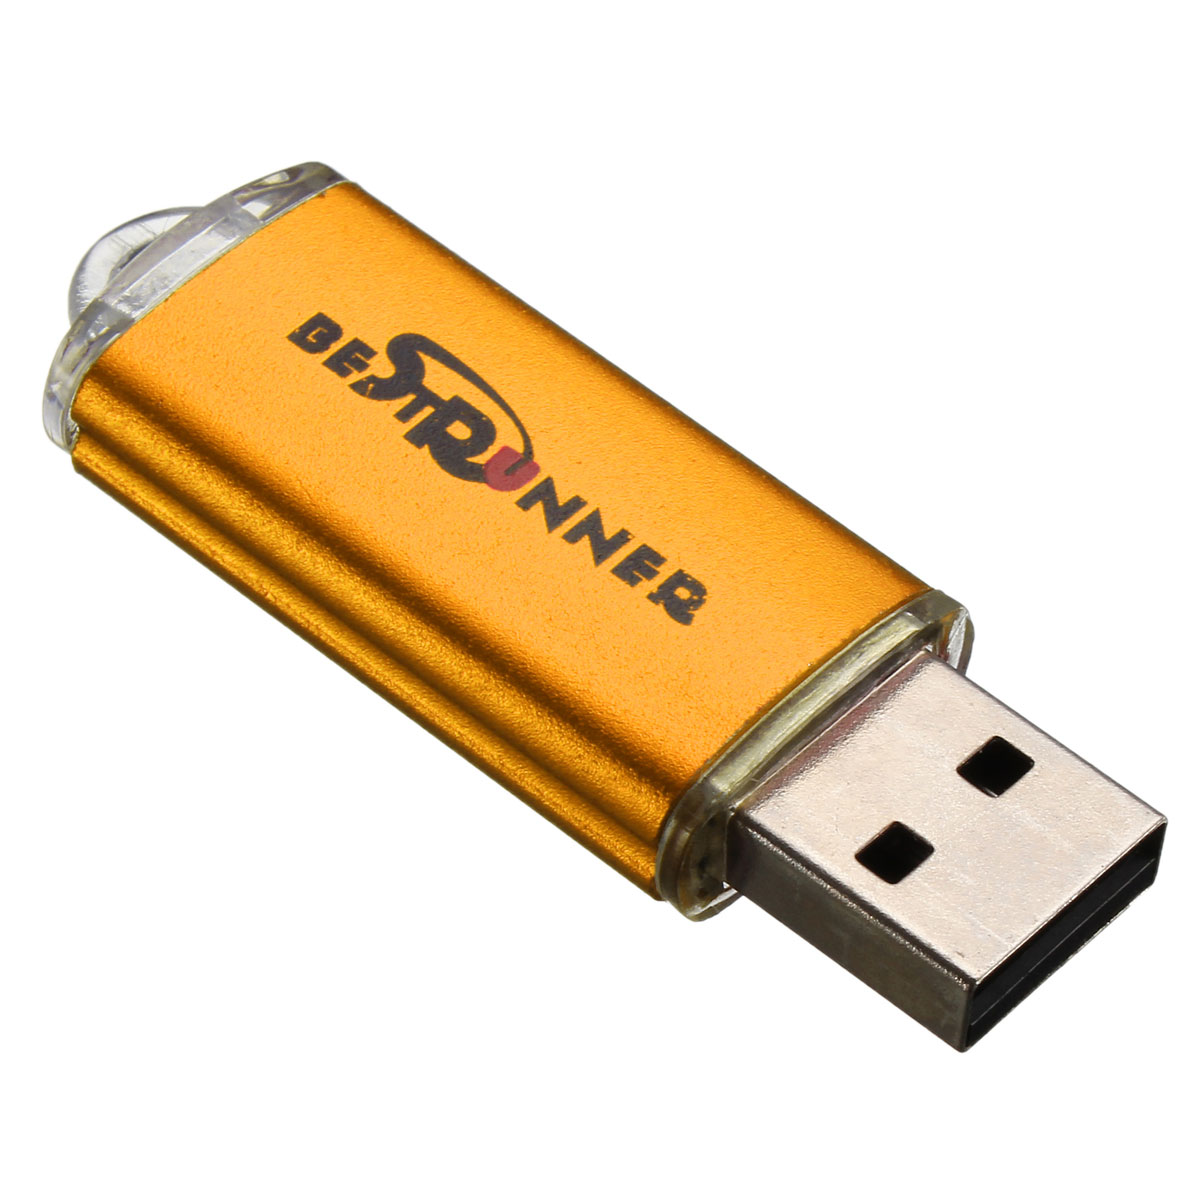 BESTRUNNER 256MB USB 2.0 Flash Memory Stick Pen Drive Computers &amp Storage Thumb Candy Color